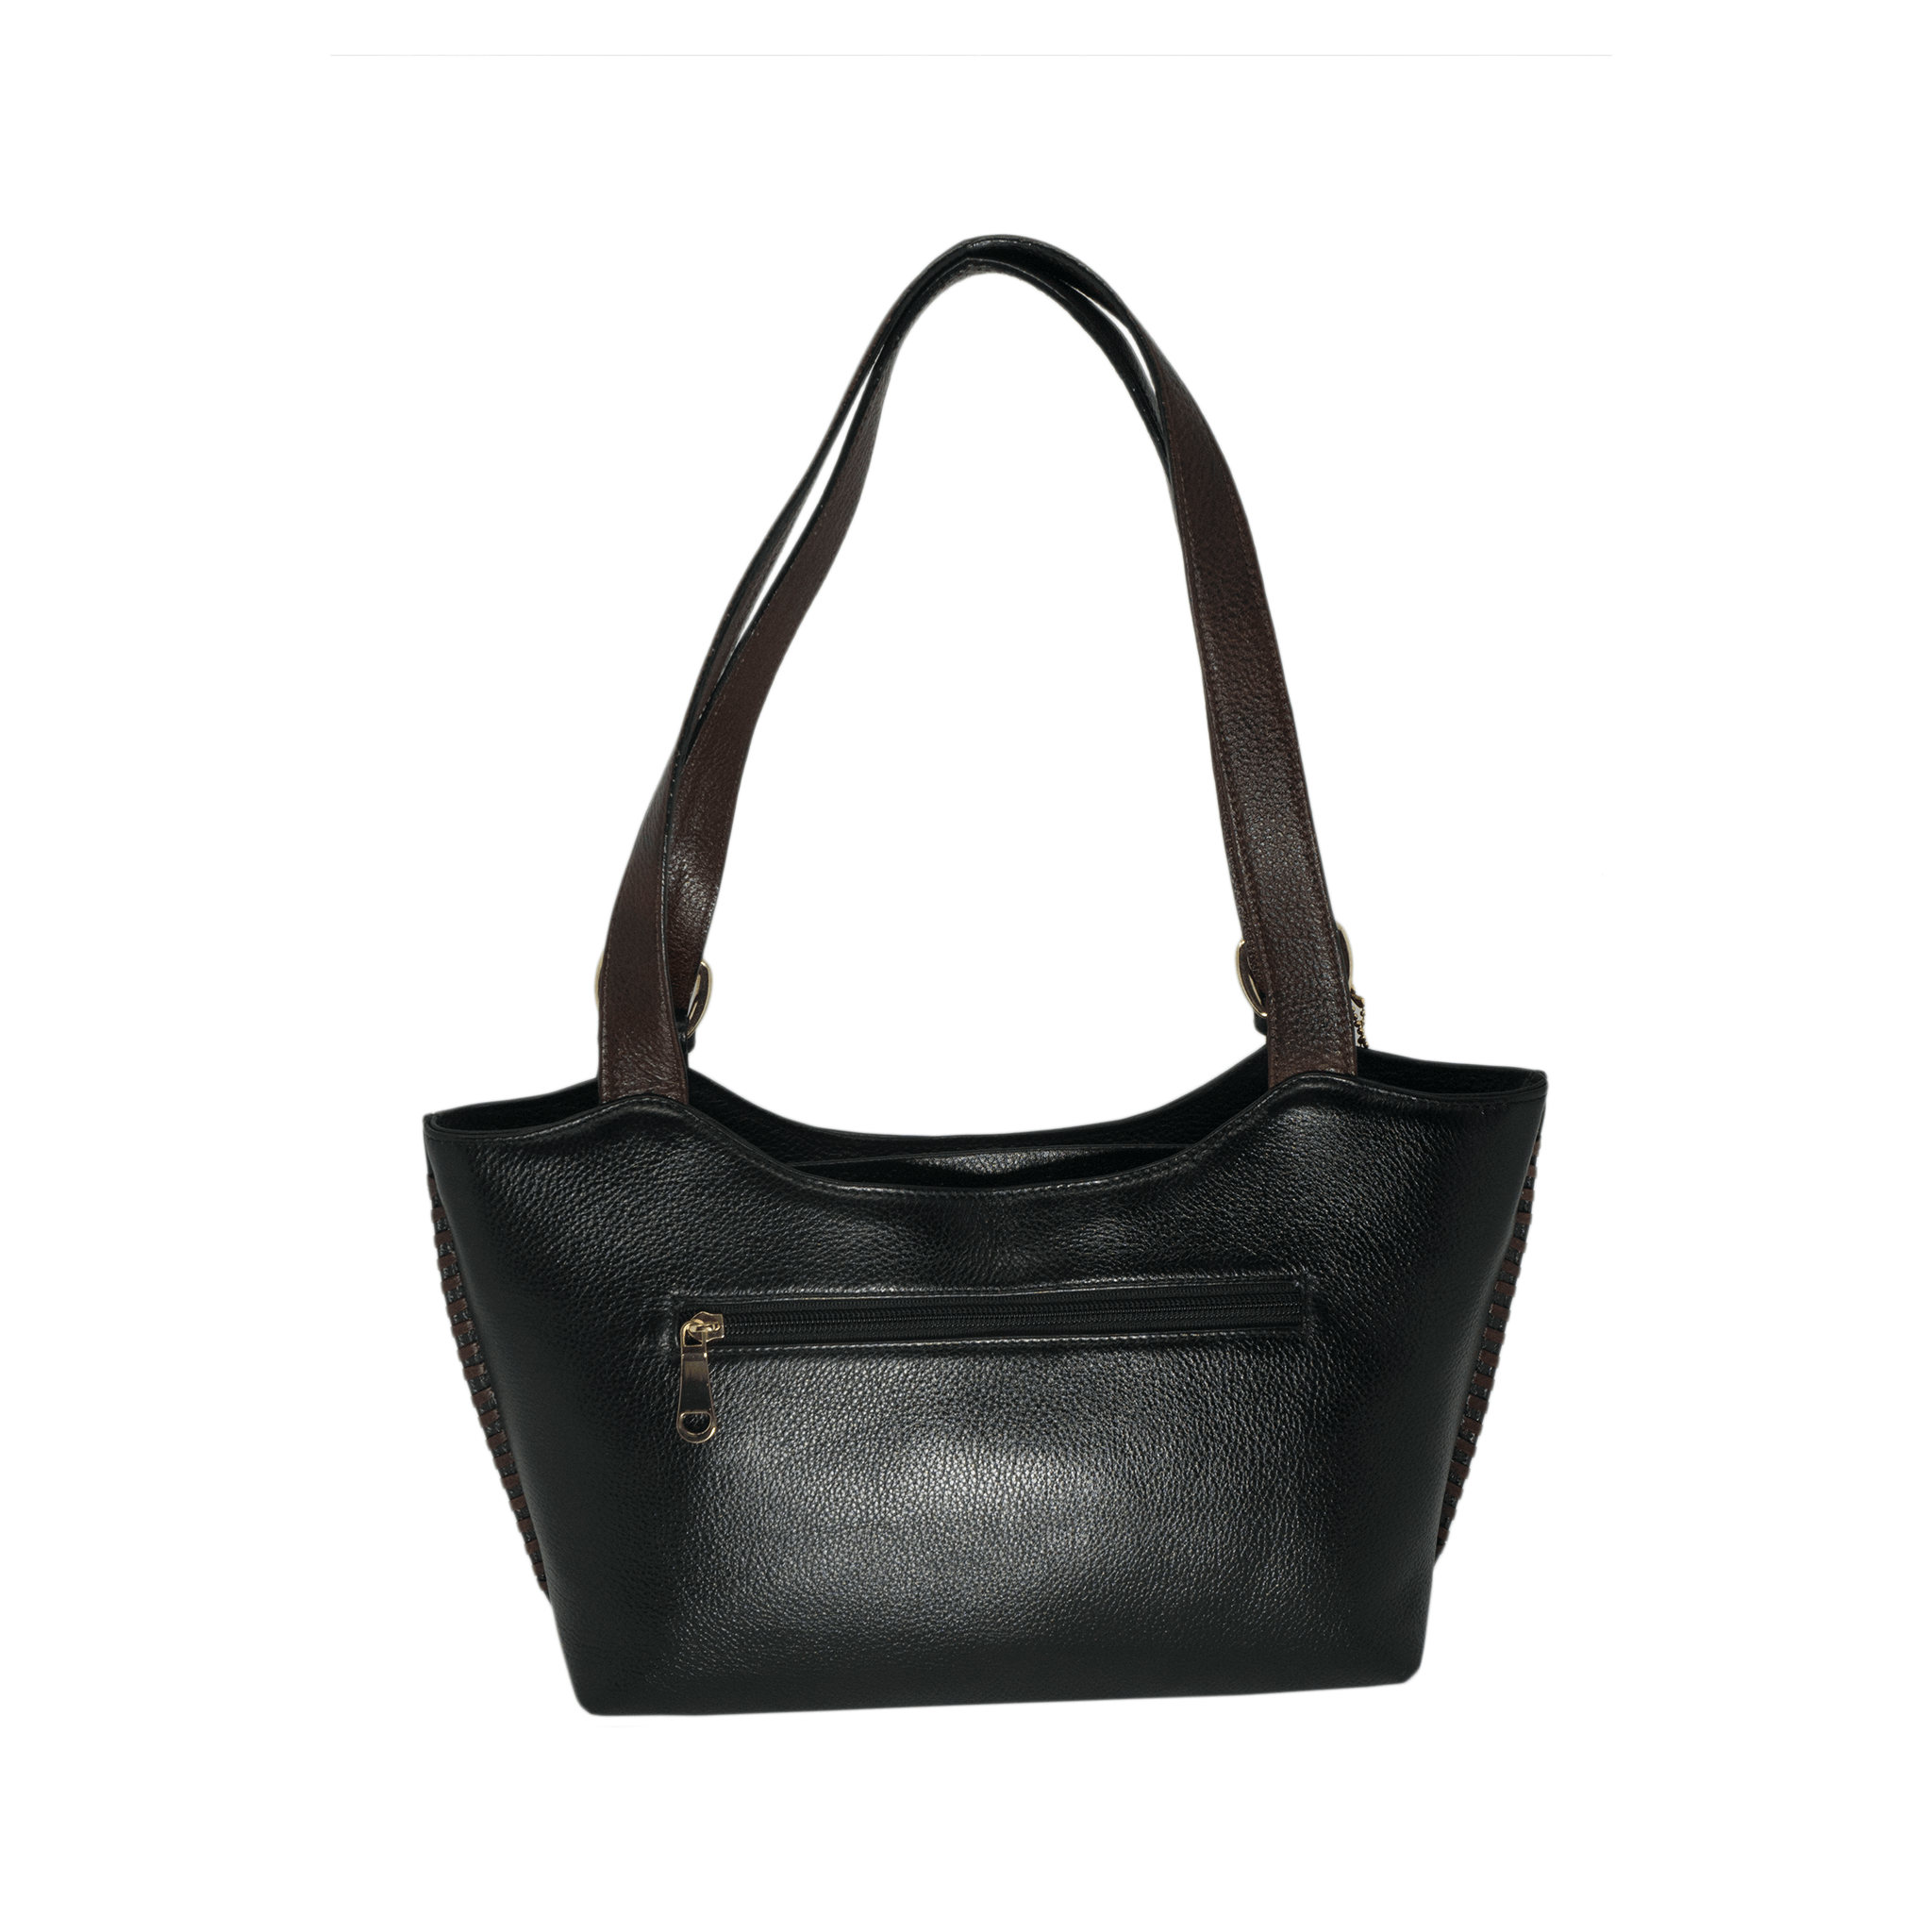 Handcrafted genuine black leather shoulder bag back view for women by RELUKS